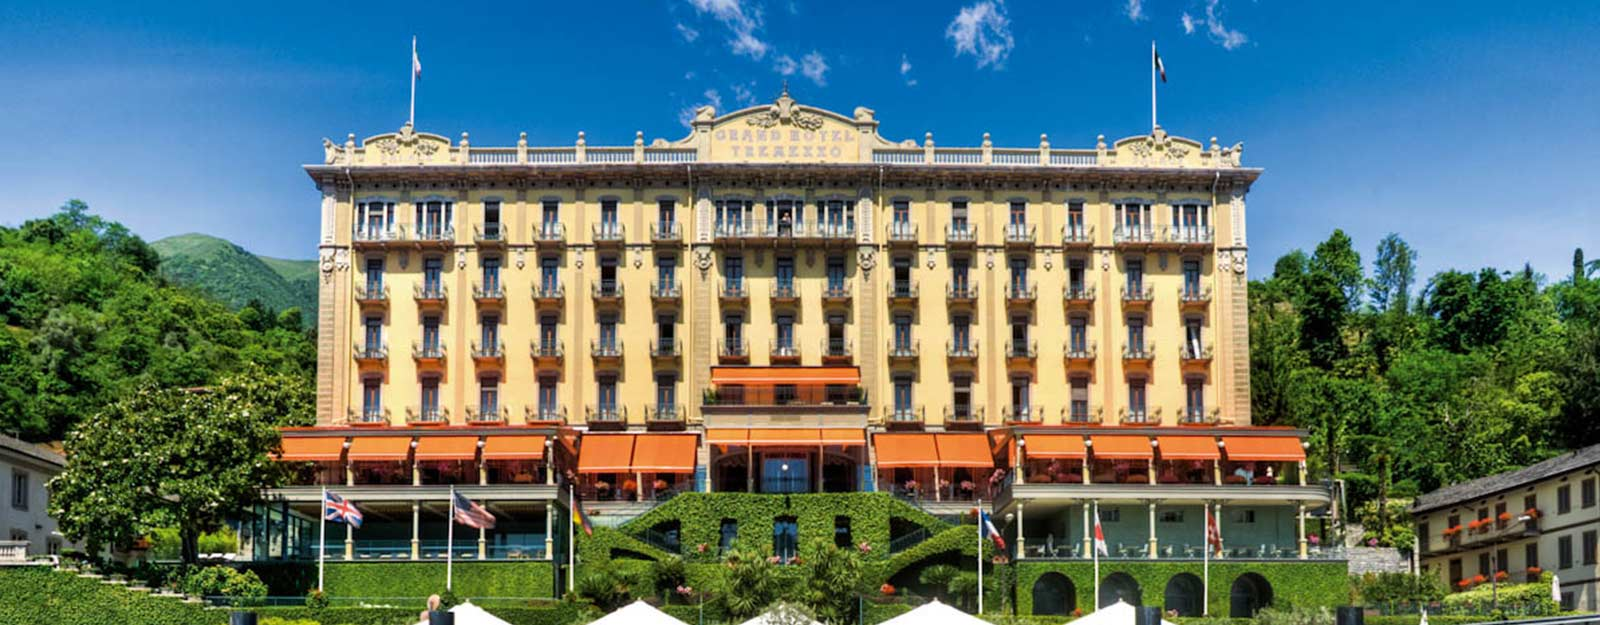 grand hotel tremezzo como weddings